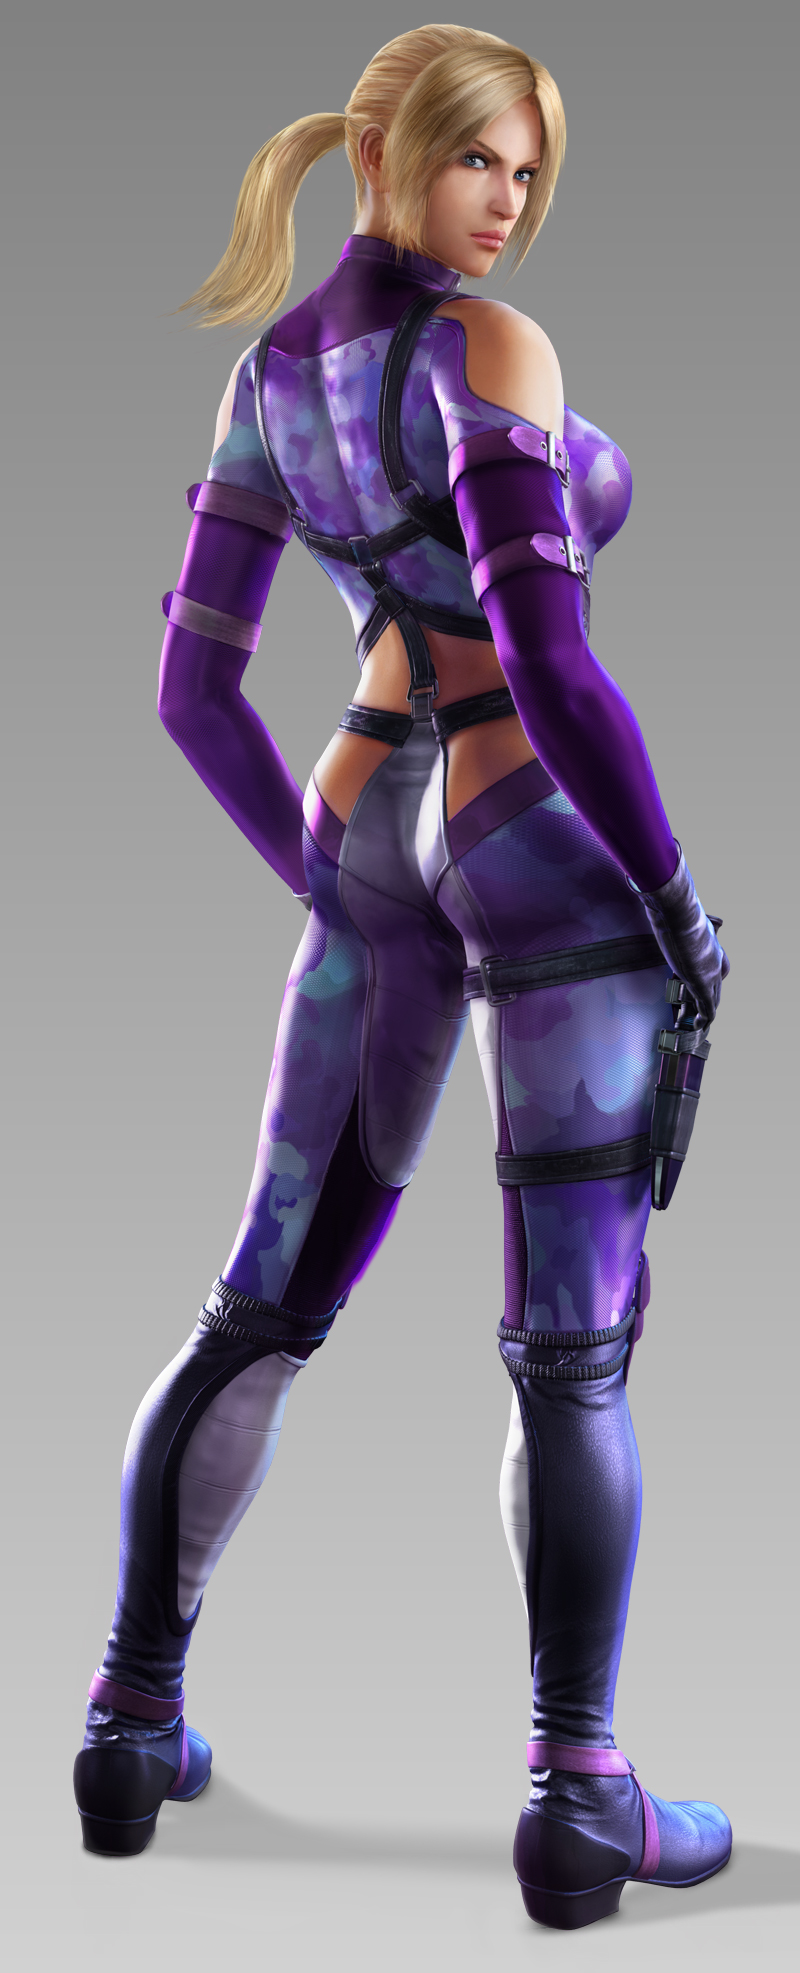 Tekken CG Render Nina Williams